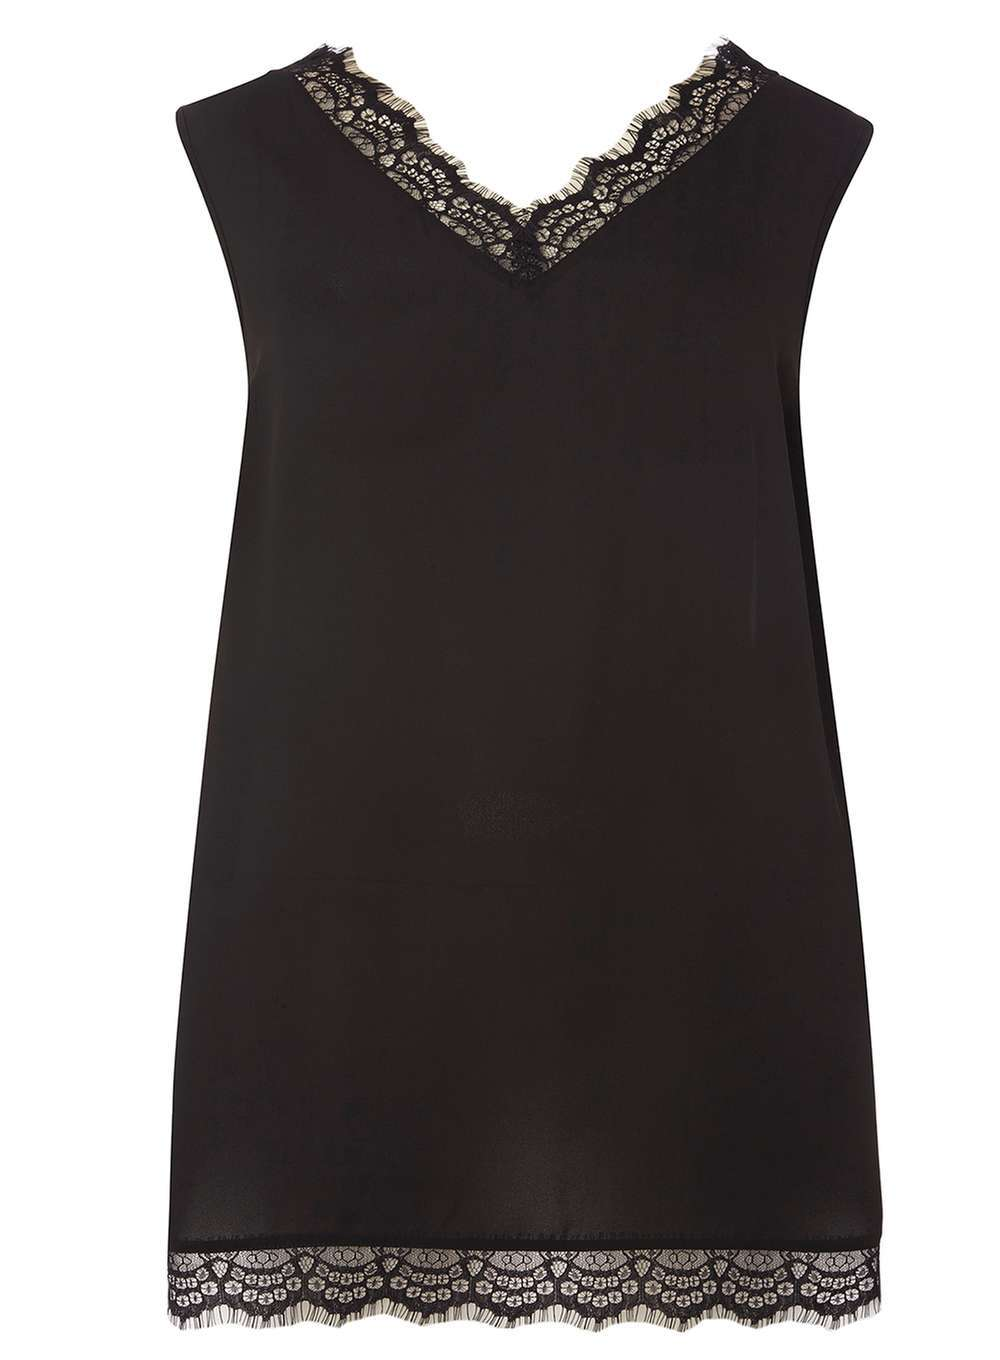 Womens Dp Curve Plus Size Black Eyelash Lace Camisole Black - neckline: v-neck; pattern: plain; sleeve style: sleeveless; style: camisole; predominant colour: black; occasions: casual, evening, creative work; length: standard; fibres: polyester/polyamide - 100%; fit: body skimming; sleeve length: sleeveless; texture group: silky - light; pattern type: fabric; embellishment: lace; season: a/w 2016; wardrobe: highlight